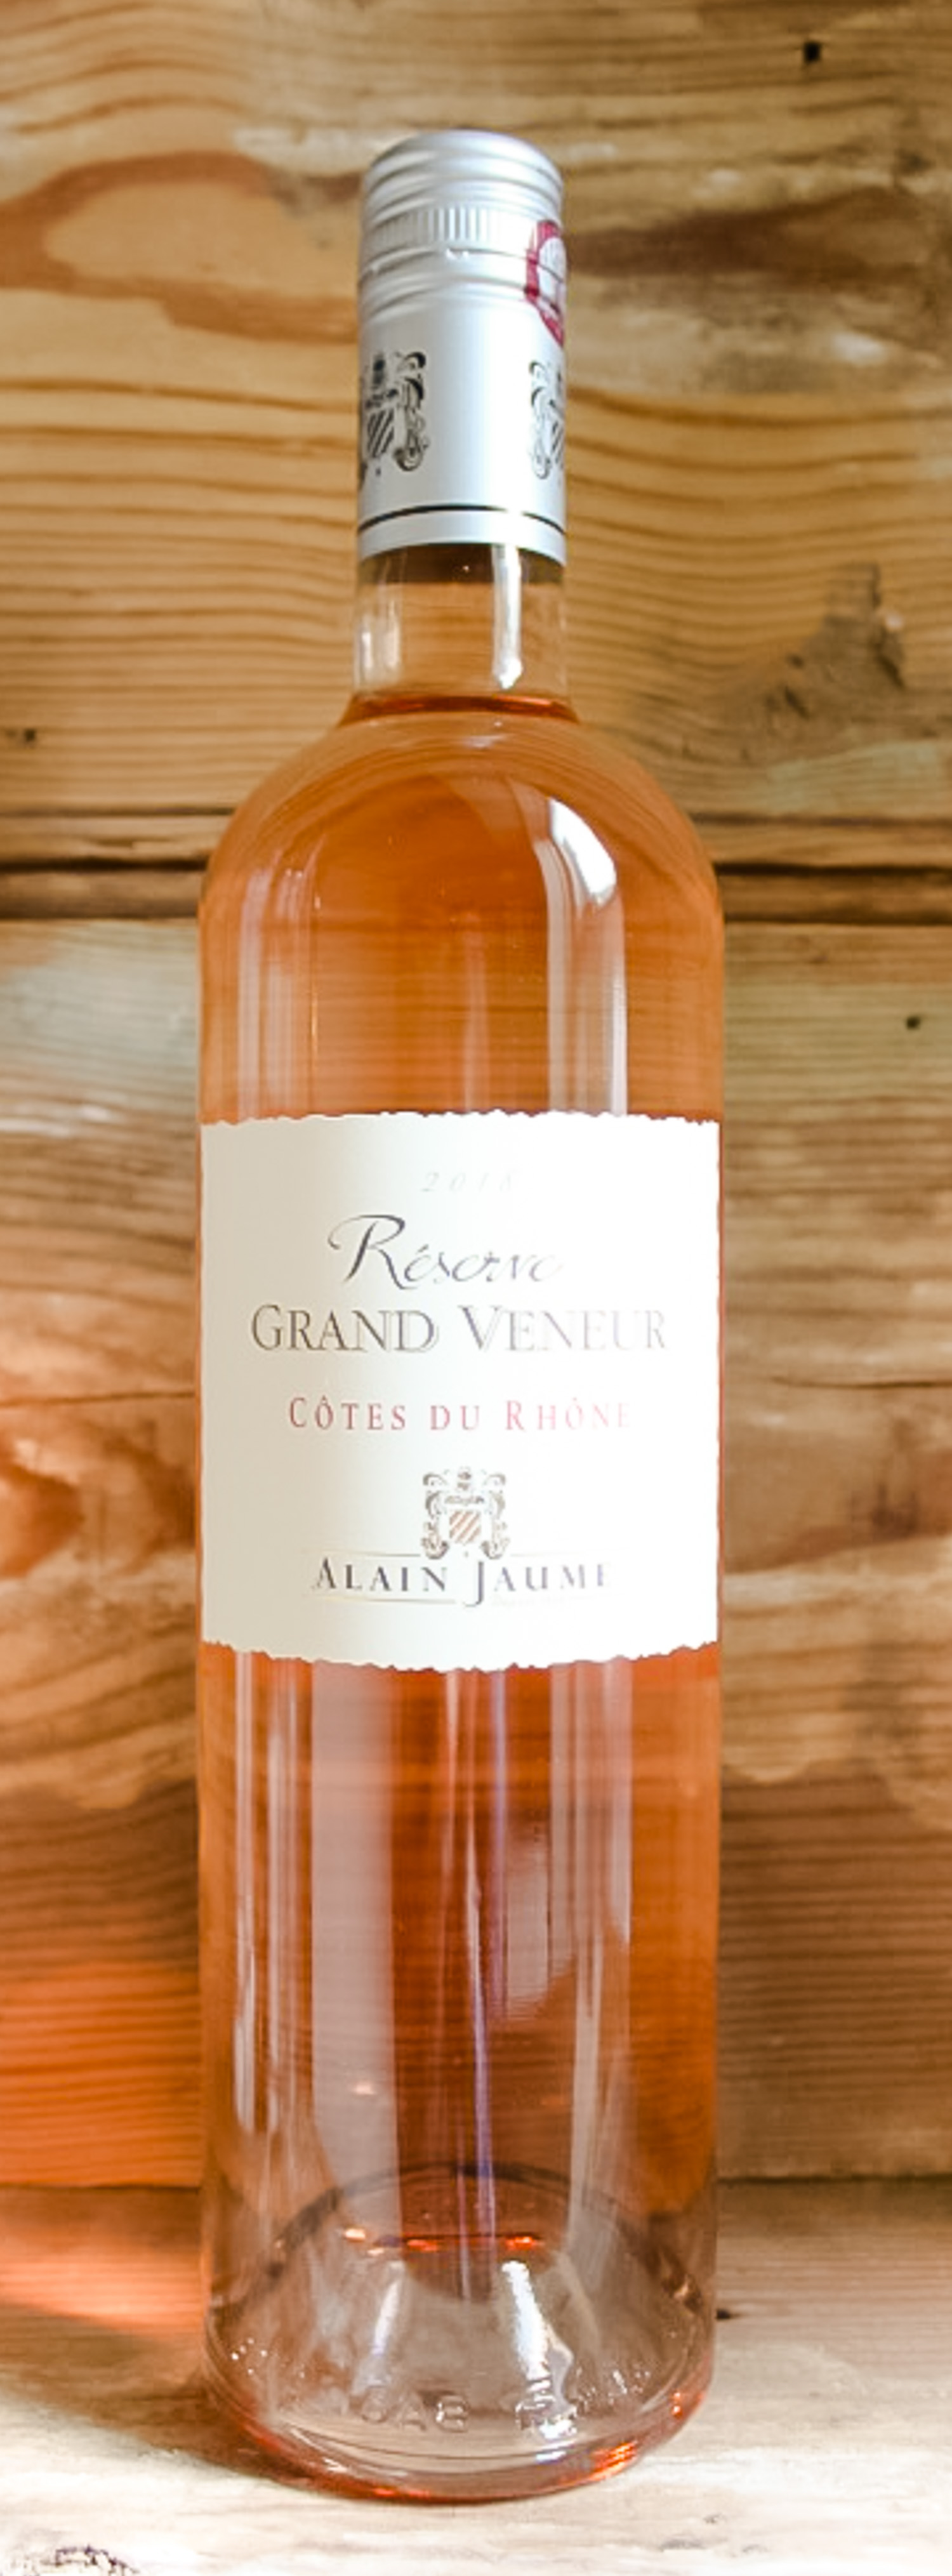 Grand Veneur Côtes du Rhône Rosé 2018 - Origin: FranceRetail: $13.95 | Sale: $12.55Established in the northern part of Châteauneuf-du-Pape, the Jaume family has been making wine since 1826 when Mathieu Jaume started harvesting grapes. This beautiful and delicate rosé is a great example from the Rhone with a nose riddled with wild strawberry and fine Provençal spices. The palate is well-balanced with a long, fresh finish. As you sip, feel as though you're strolling through a Provençal town on market day, drinking in the sights and smells of fresh strawberries, raspberries and wildflowers.Grenache | Syrah | MourvèdreOrganic.